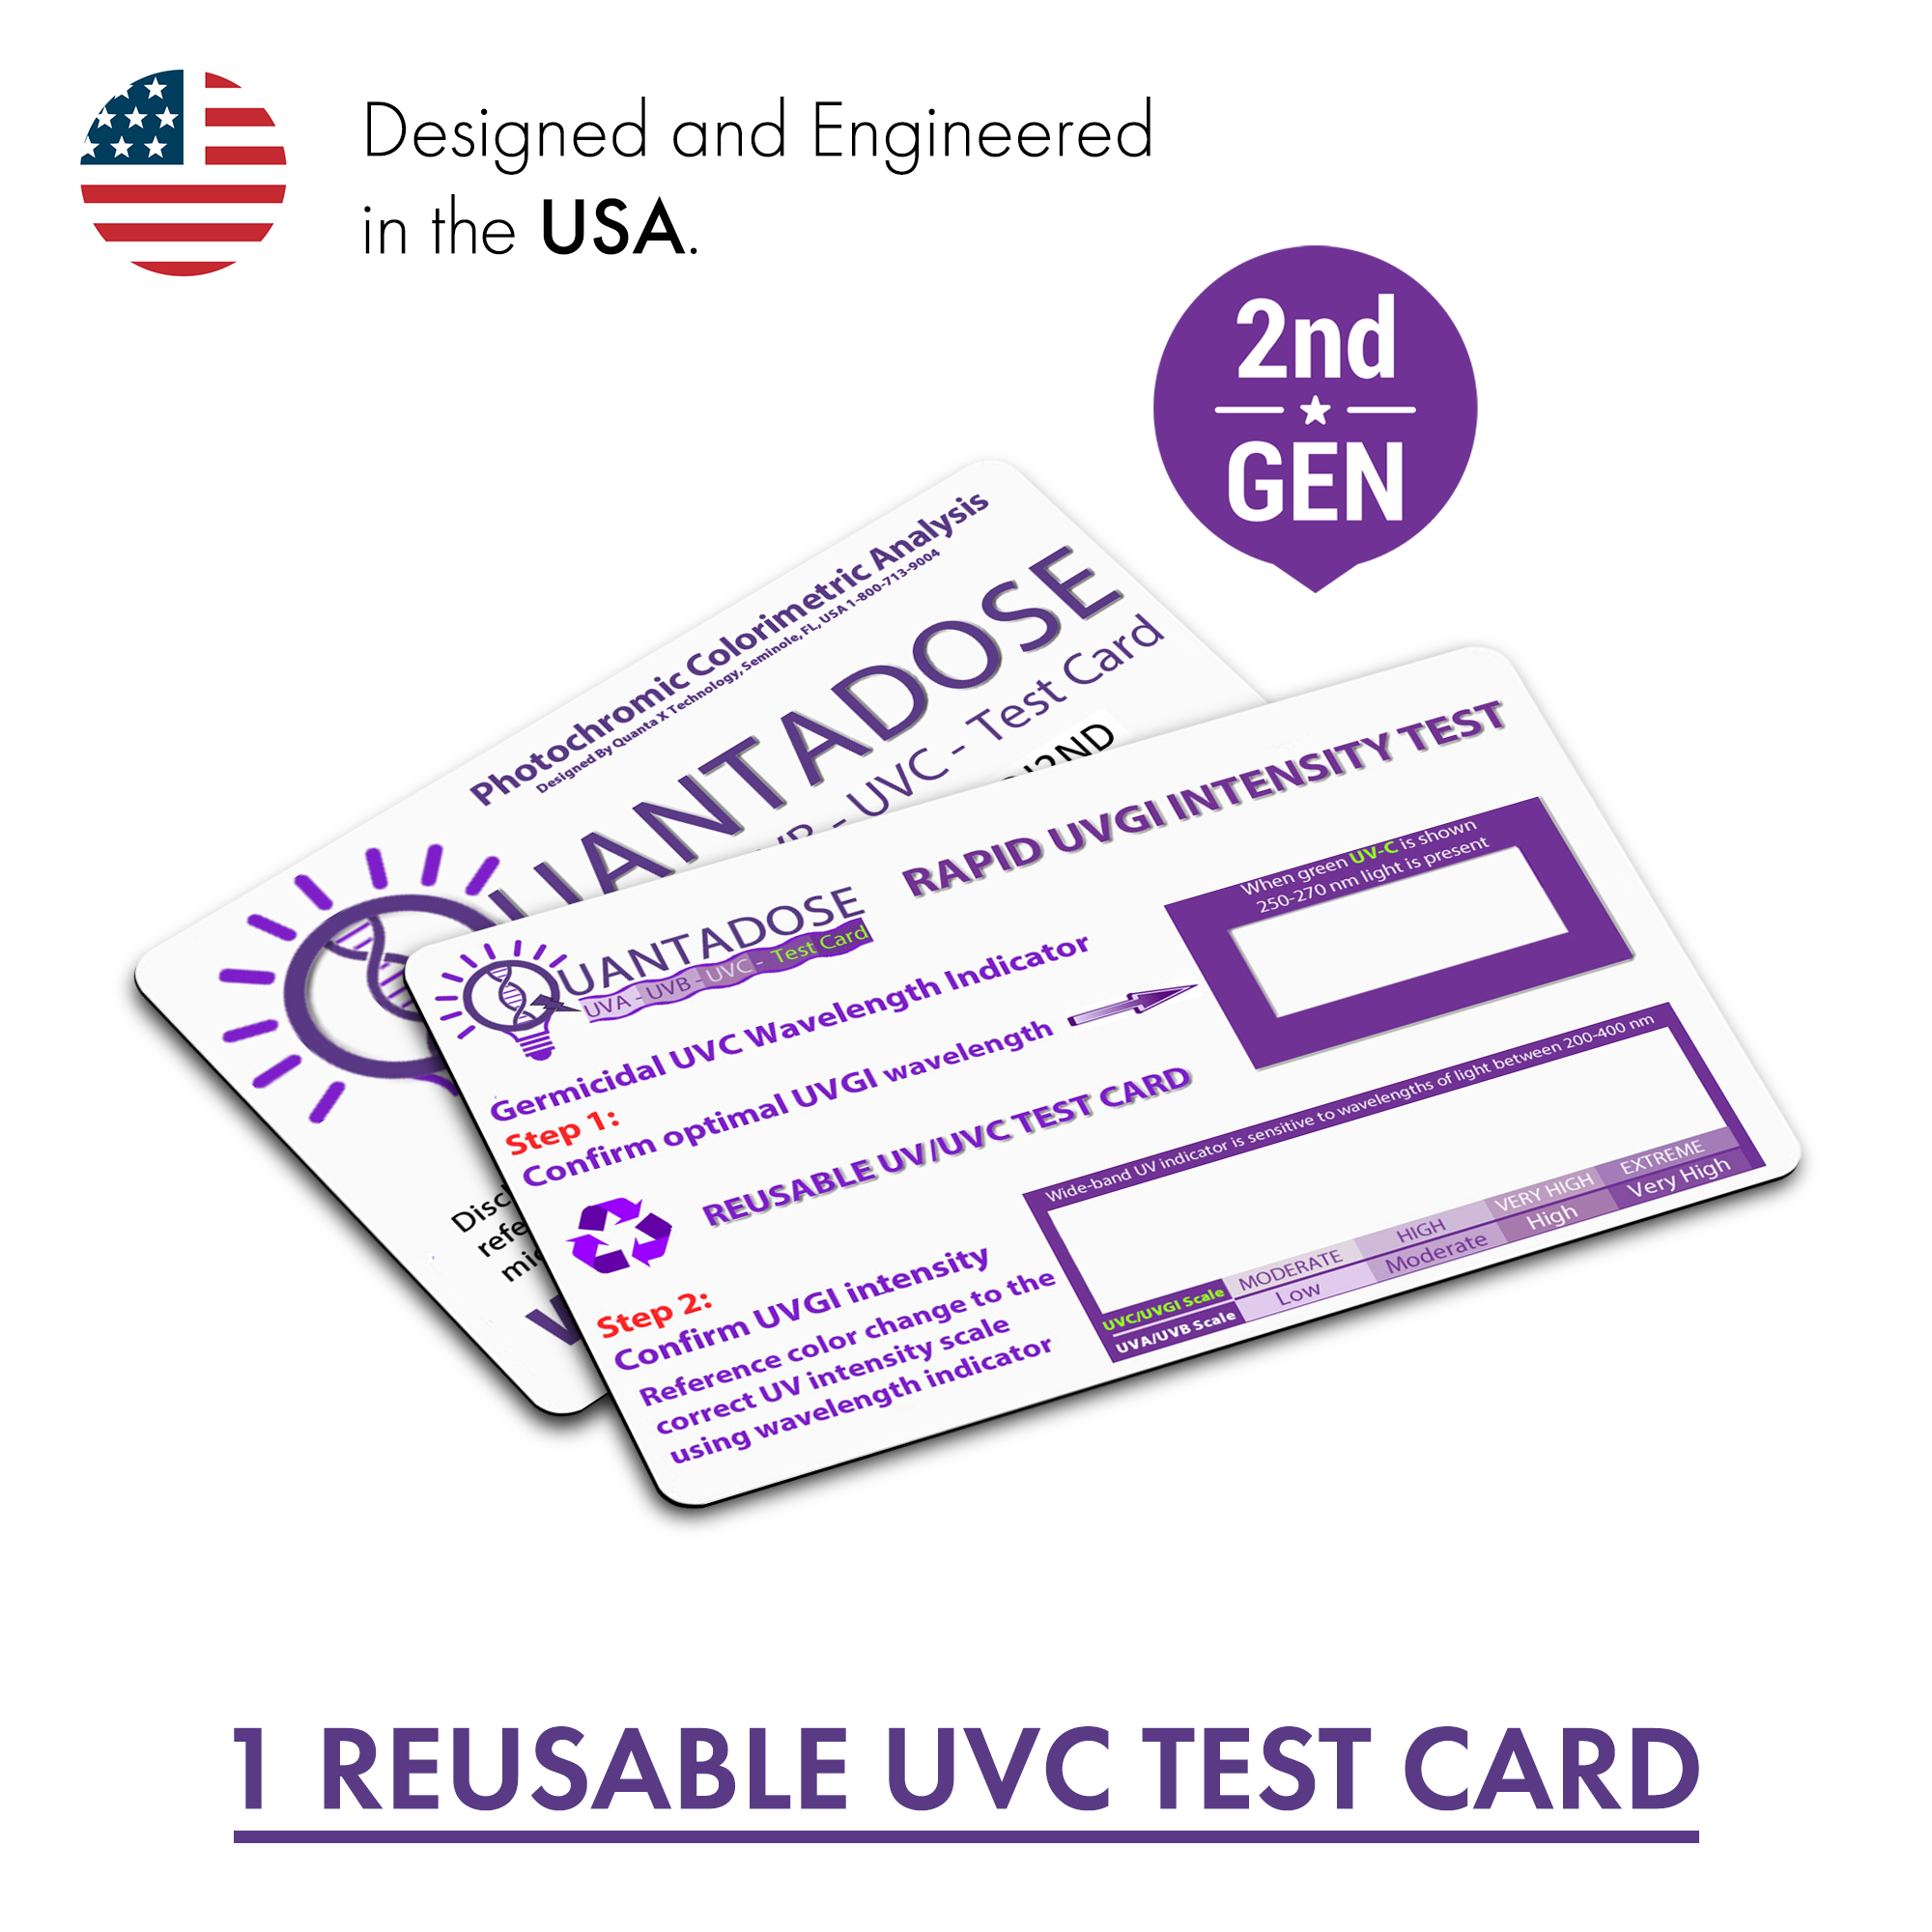 B08KZZ54BZ-quantadose-uvc-light-test-card-with-word-power-visibility-technology-001